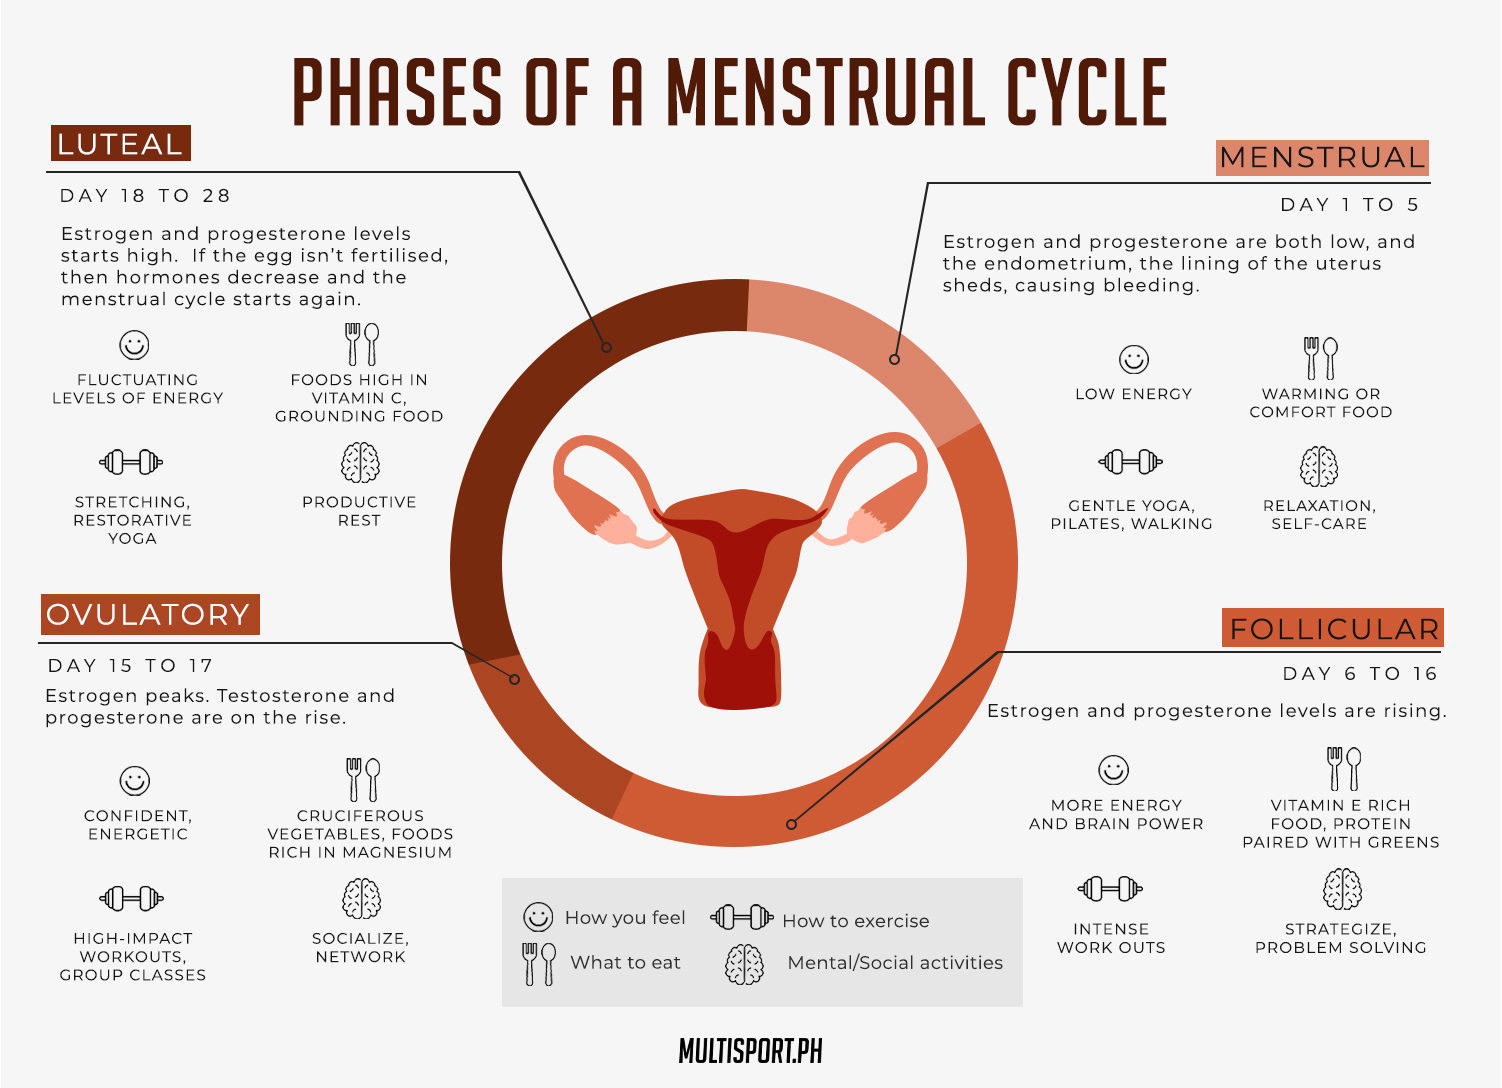 In order to reap the benefits of cycle syncing, it's important to accept that women's bodies are not designed to function at high energy levels all month long